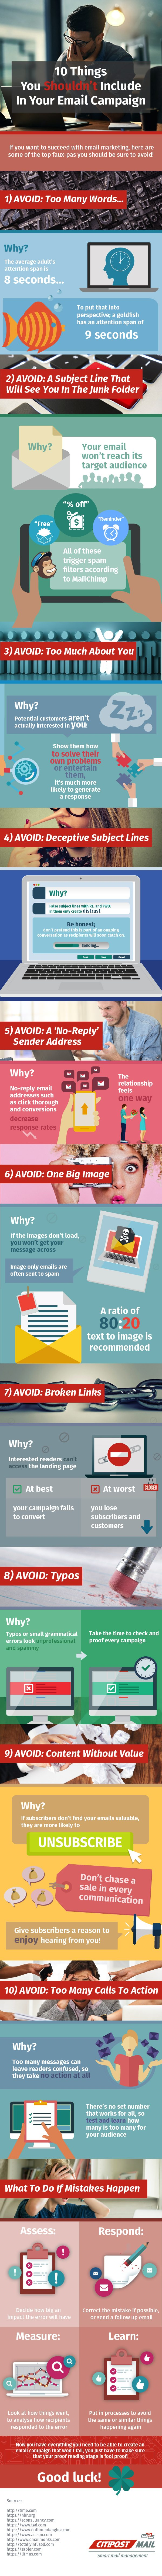 10 Things You Shouldn't Include in Your Email Marketing Campaigns [Infographic] | Social Media Today